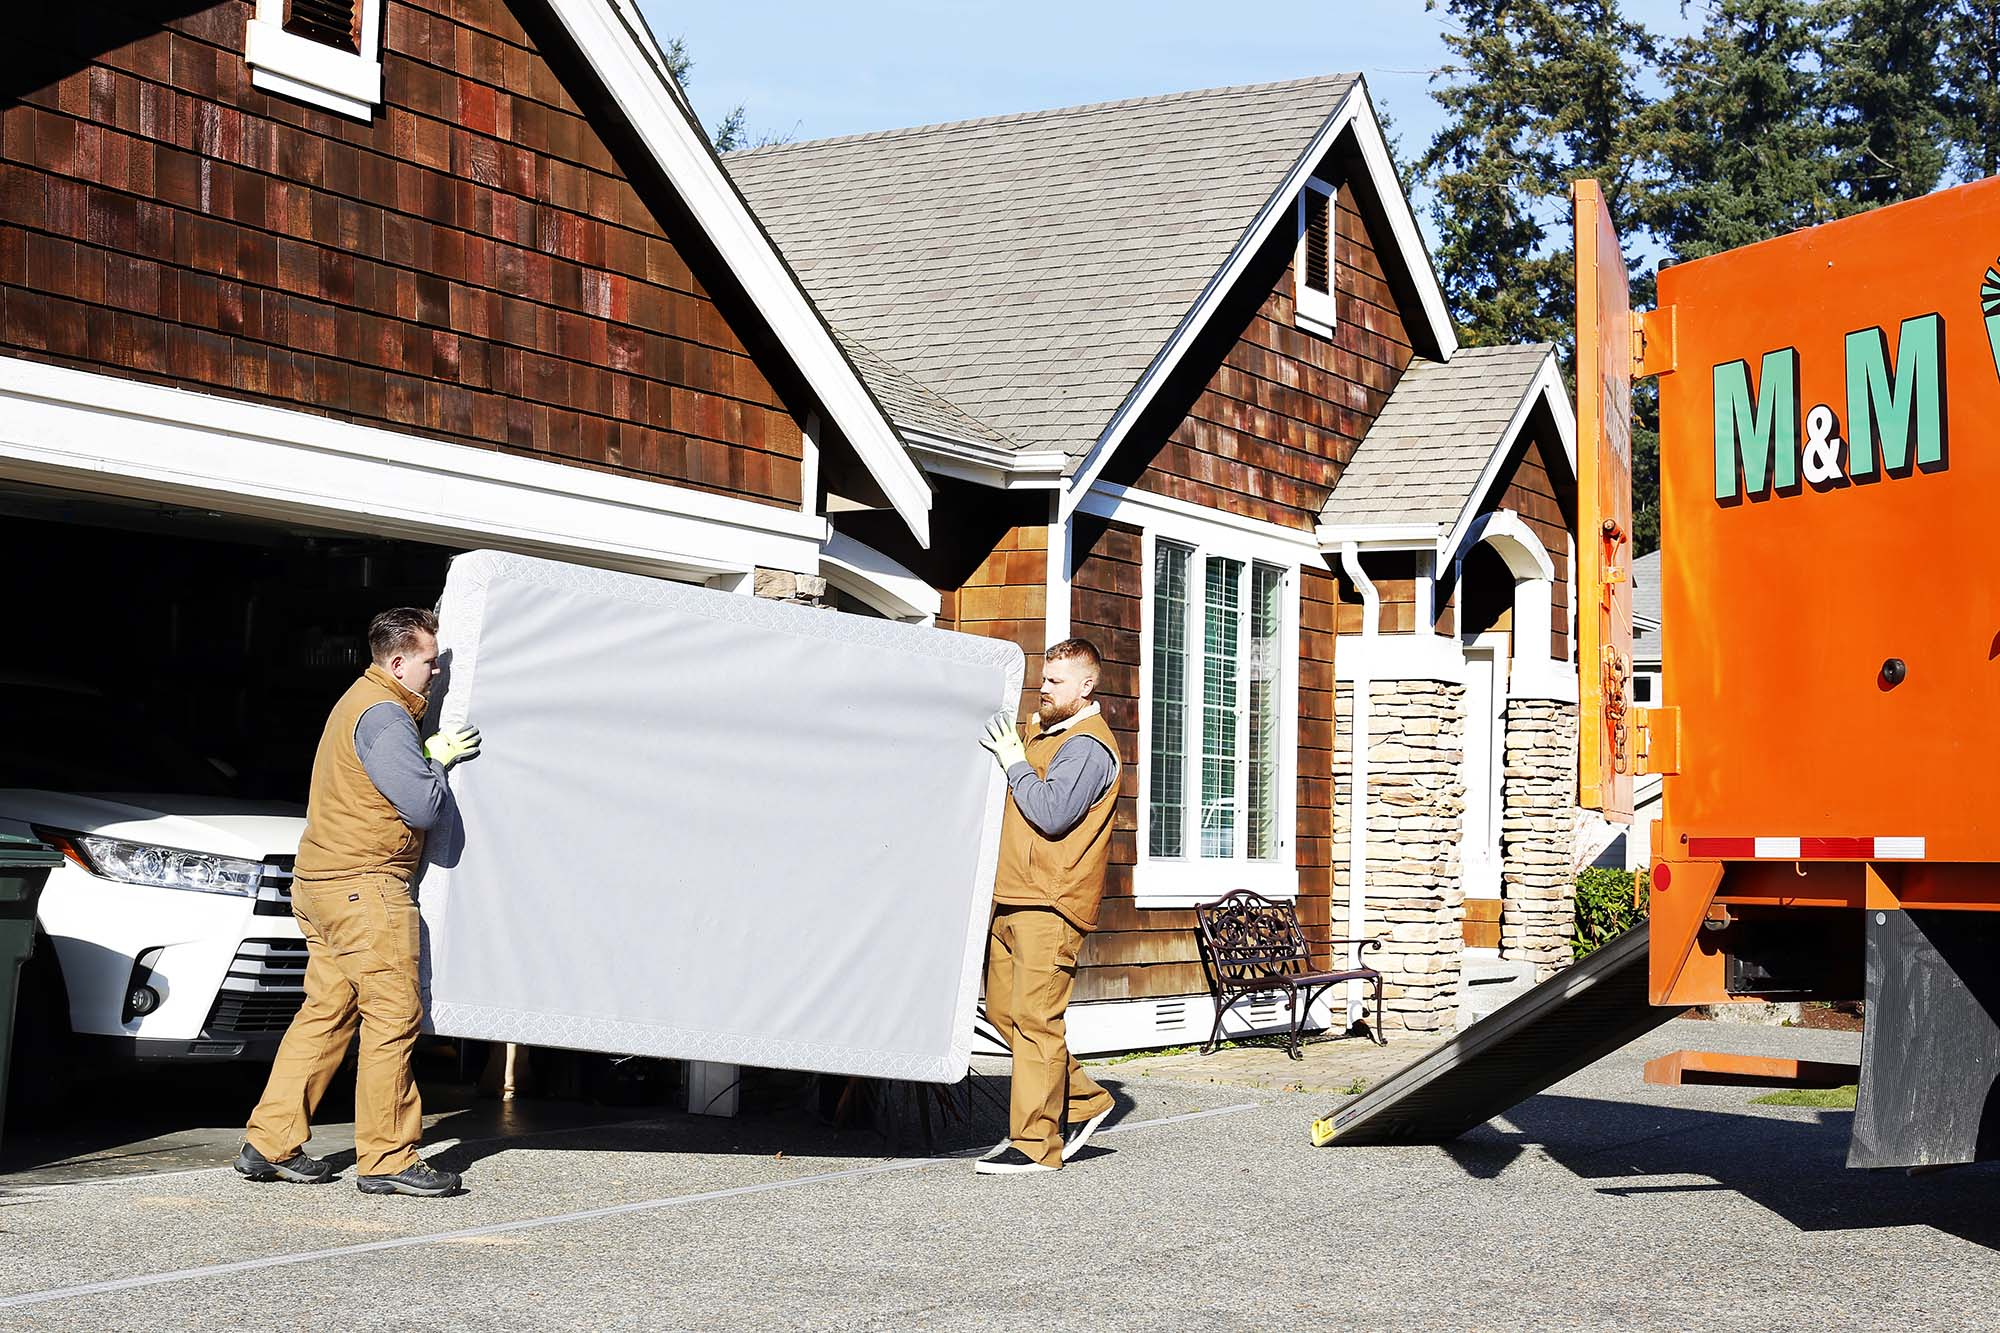 M and M Junk Removal Service